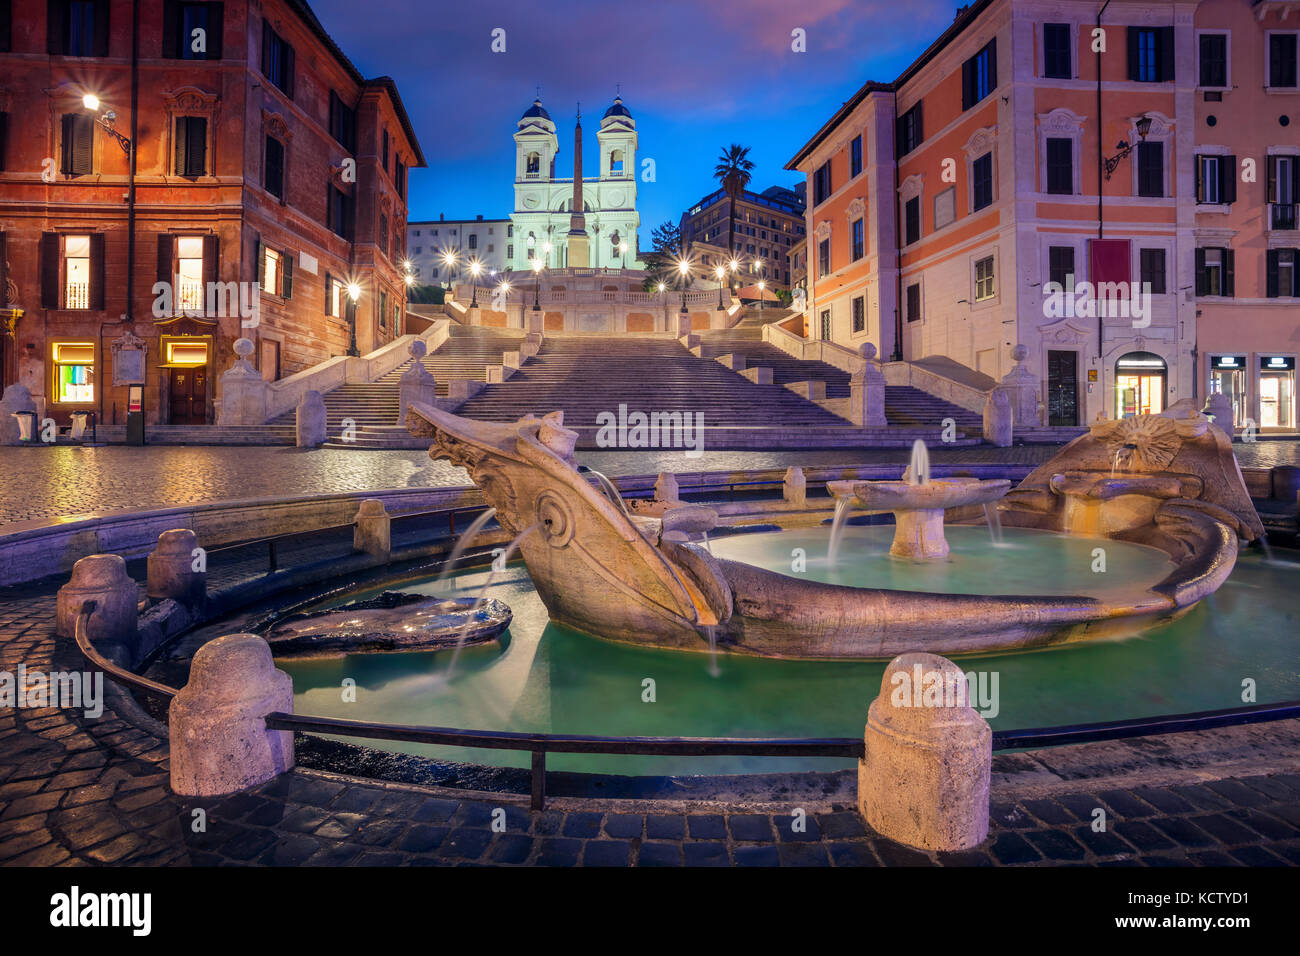 Rome. Cityscape image of Spanish Steps in Rome, Italy during sunrise. - Stock Image